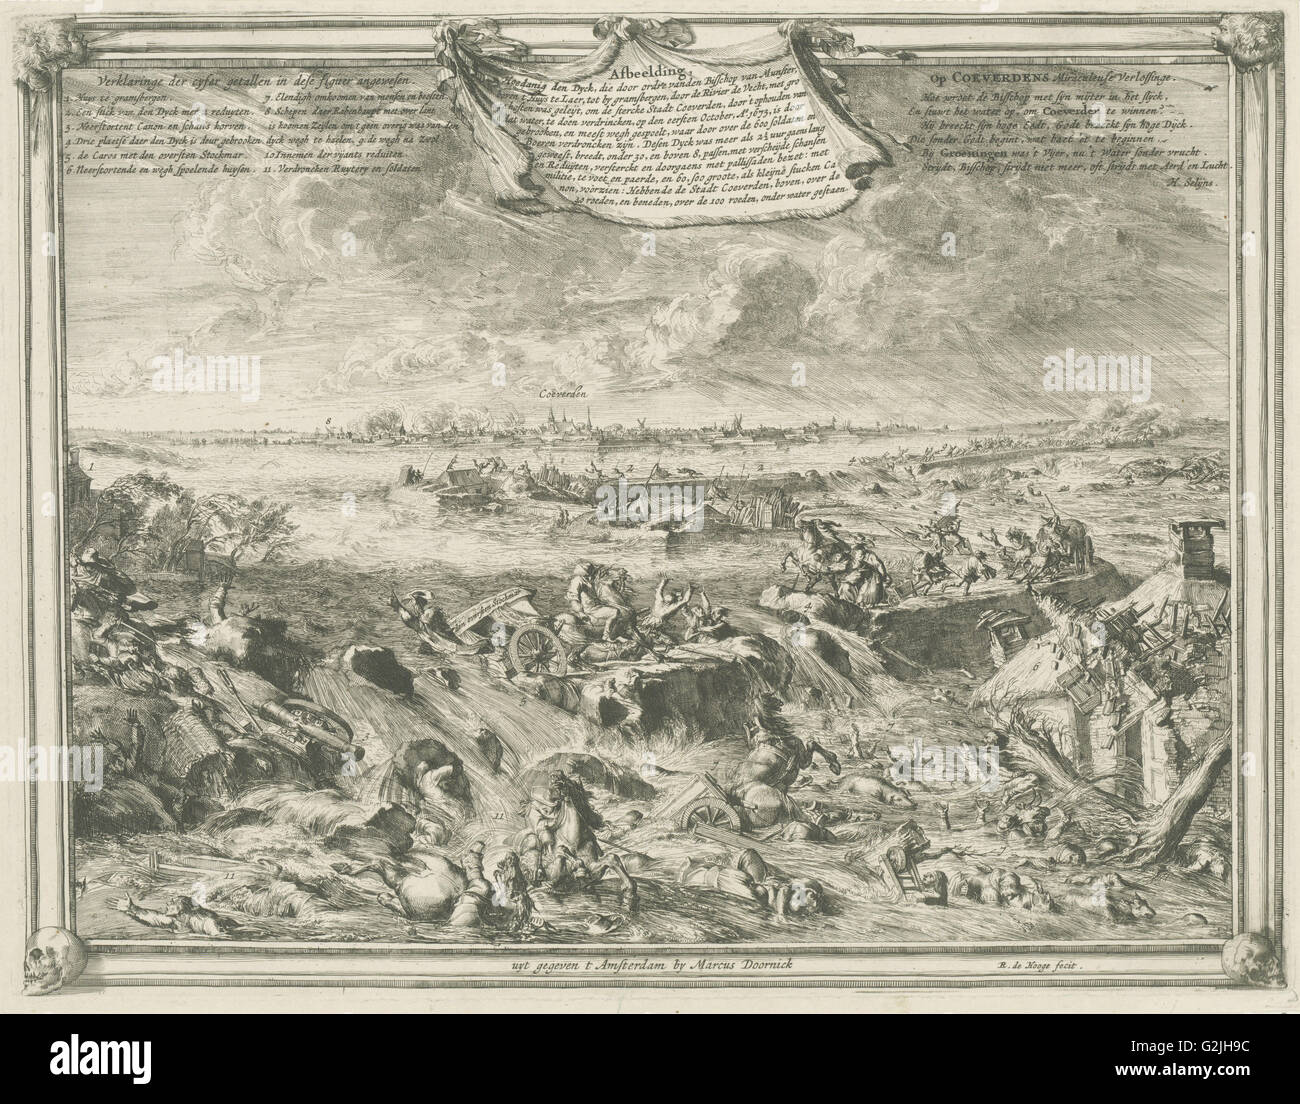 Dike near Coevorden, October 1 1673, enemy cavalry and artillery are washed away by the water - Stock Image